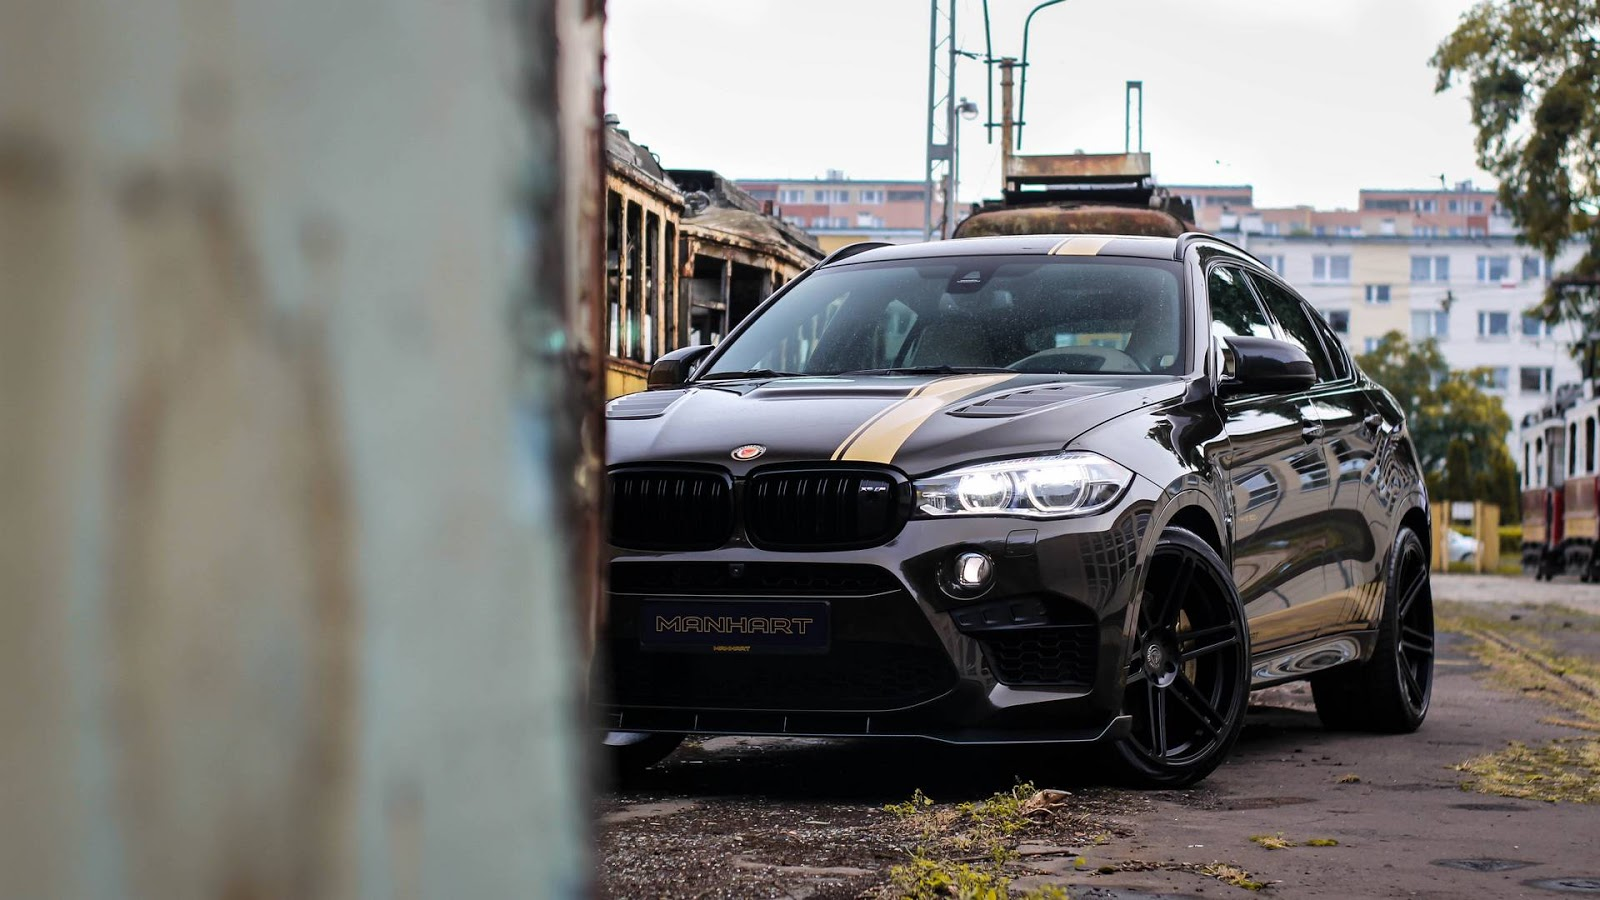 Bmw Mhx6 800 By Manhart Sounds Really Furious And Mean Bmw Car Tuning